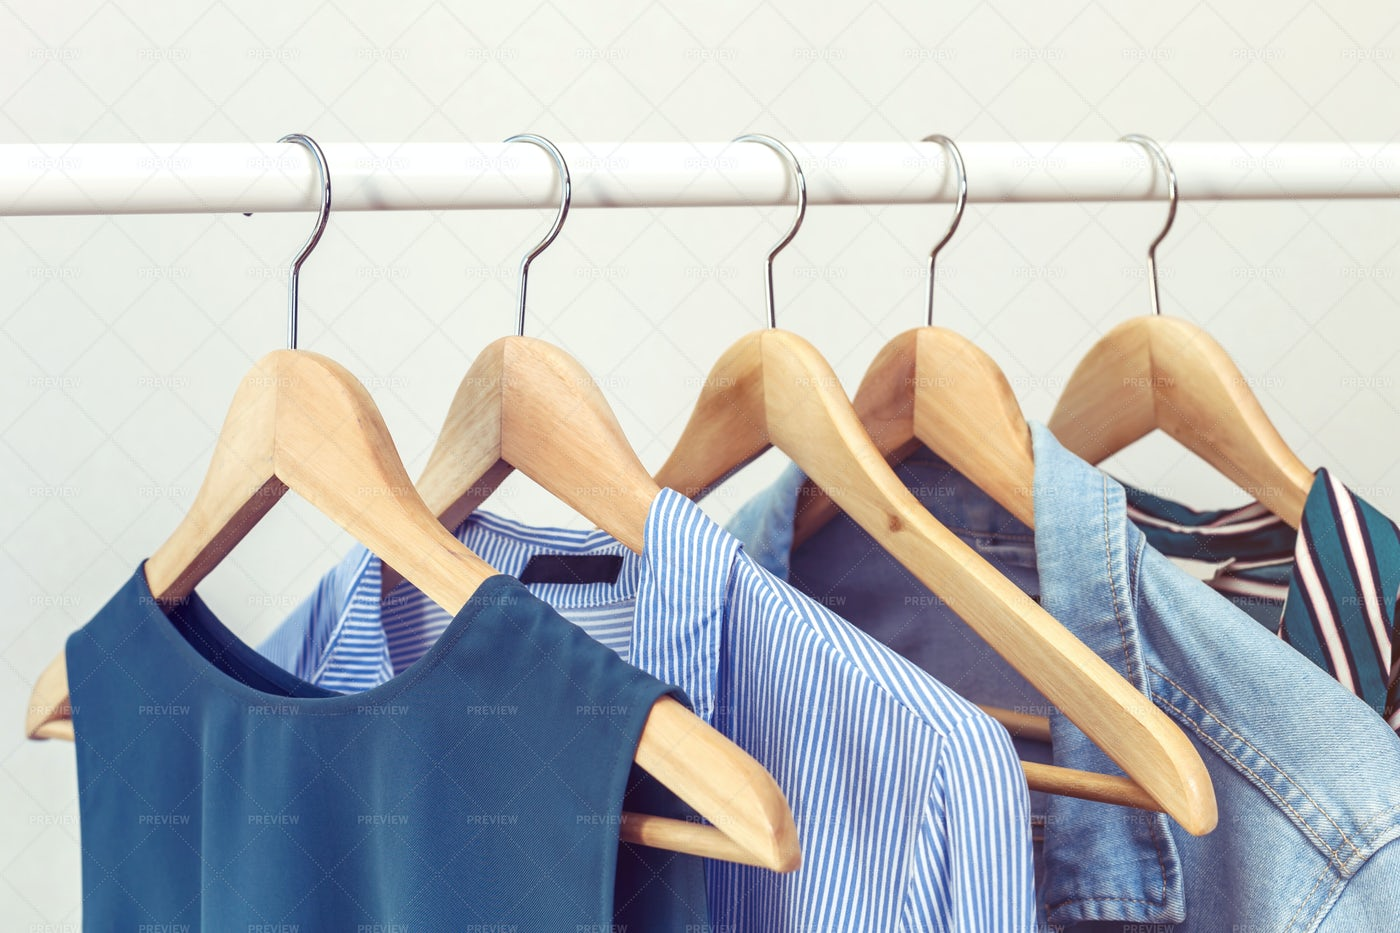 Shirts In Hangers: Stock Photos